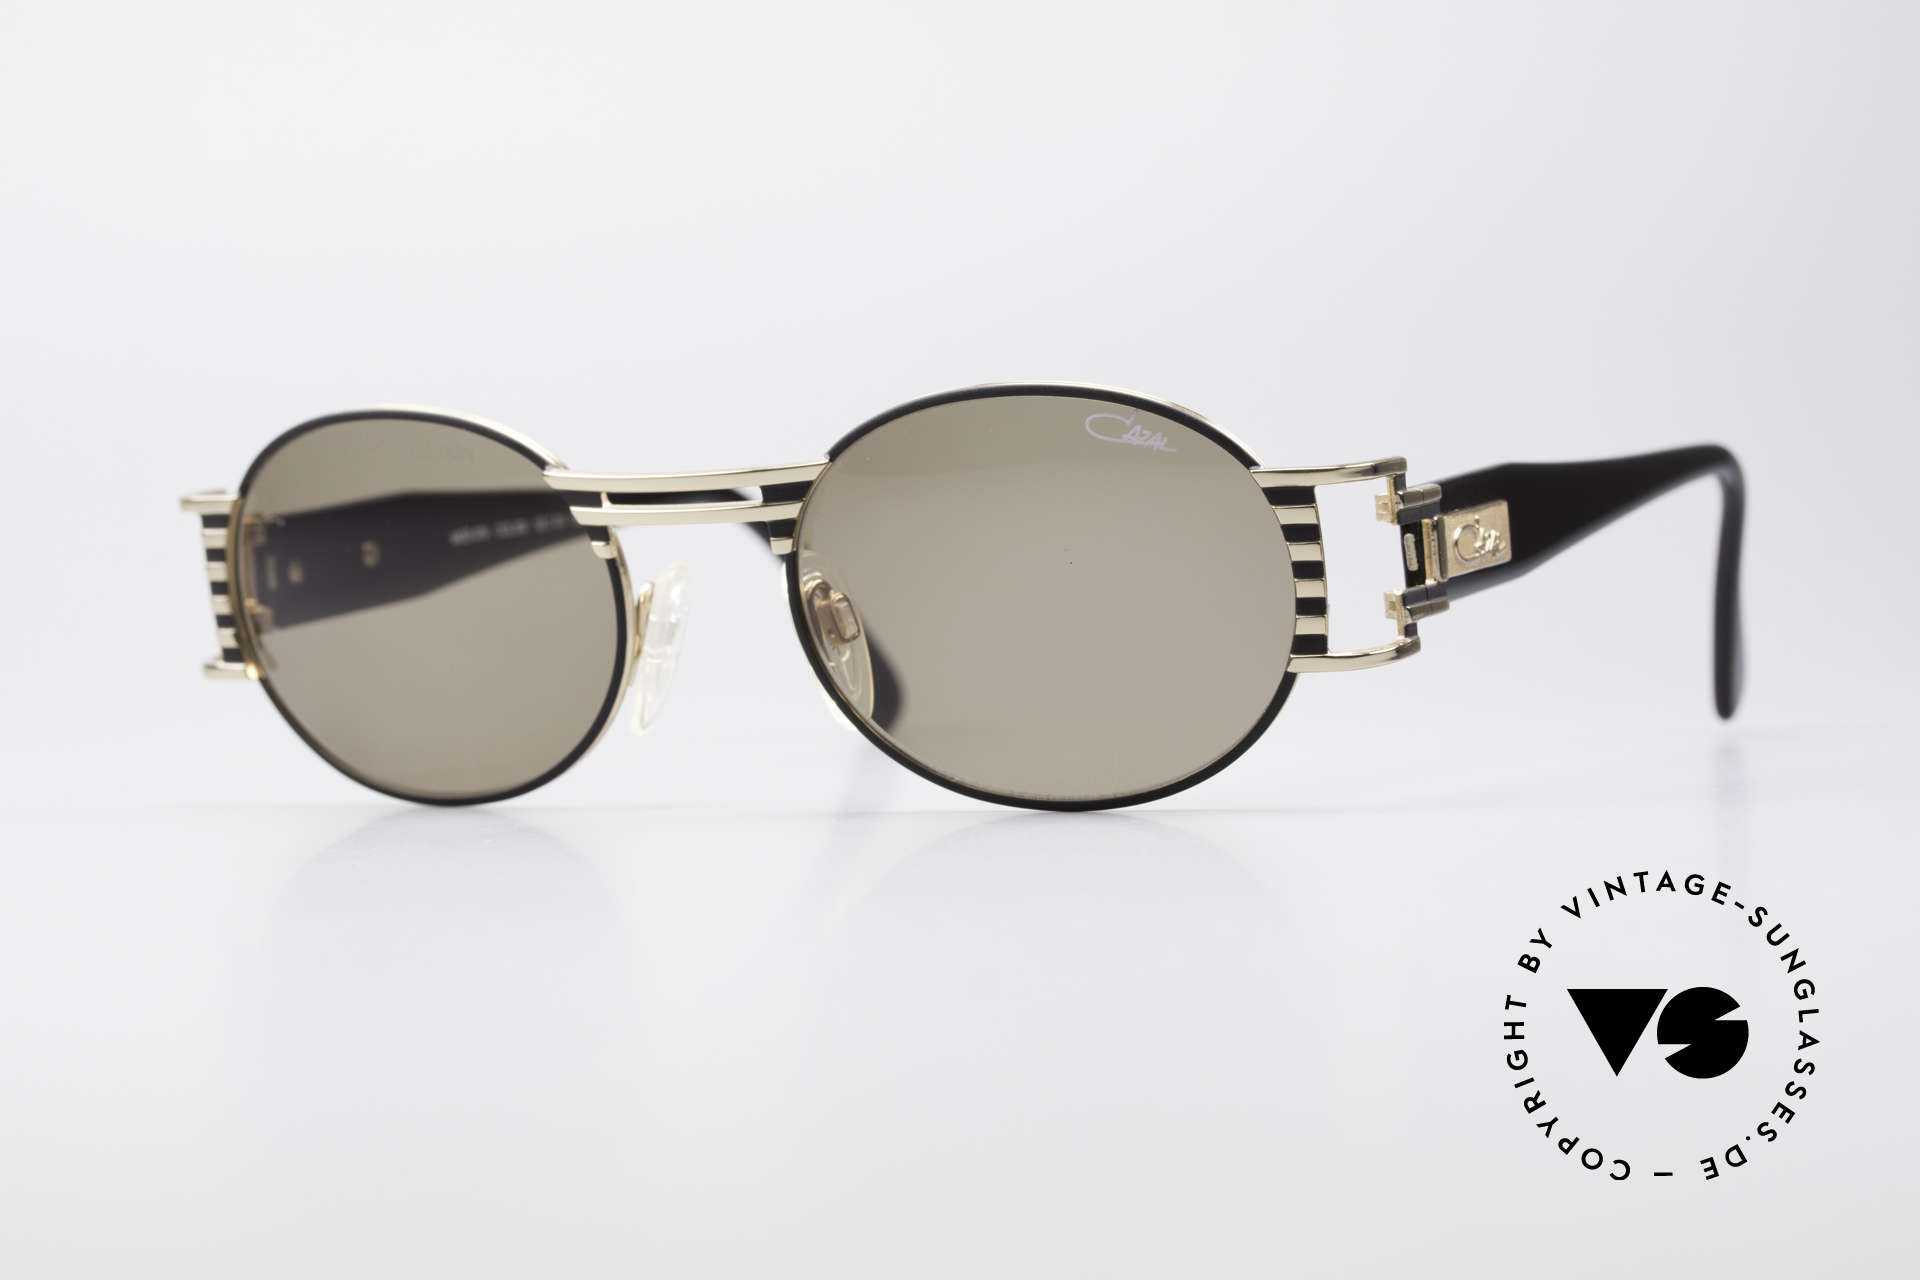 Cazal 976 90's Vintage Sunglasses Oval, extraordinary Cazal design from the late 1990's, Made for Men and Women